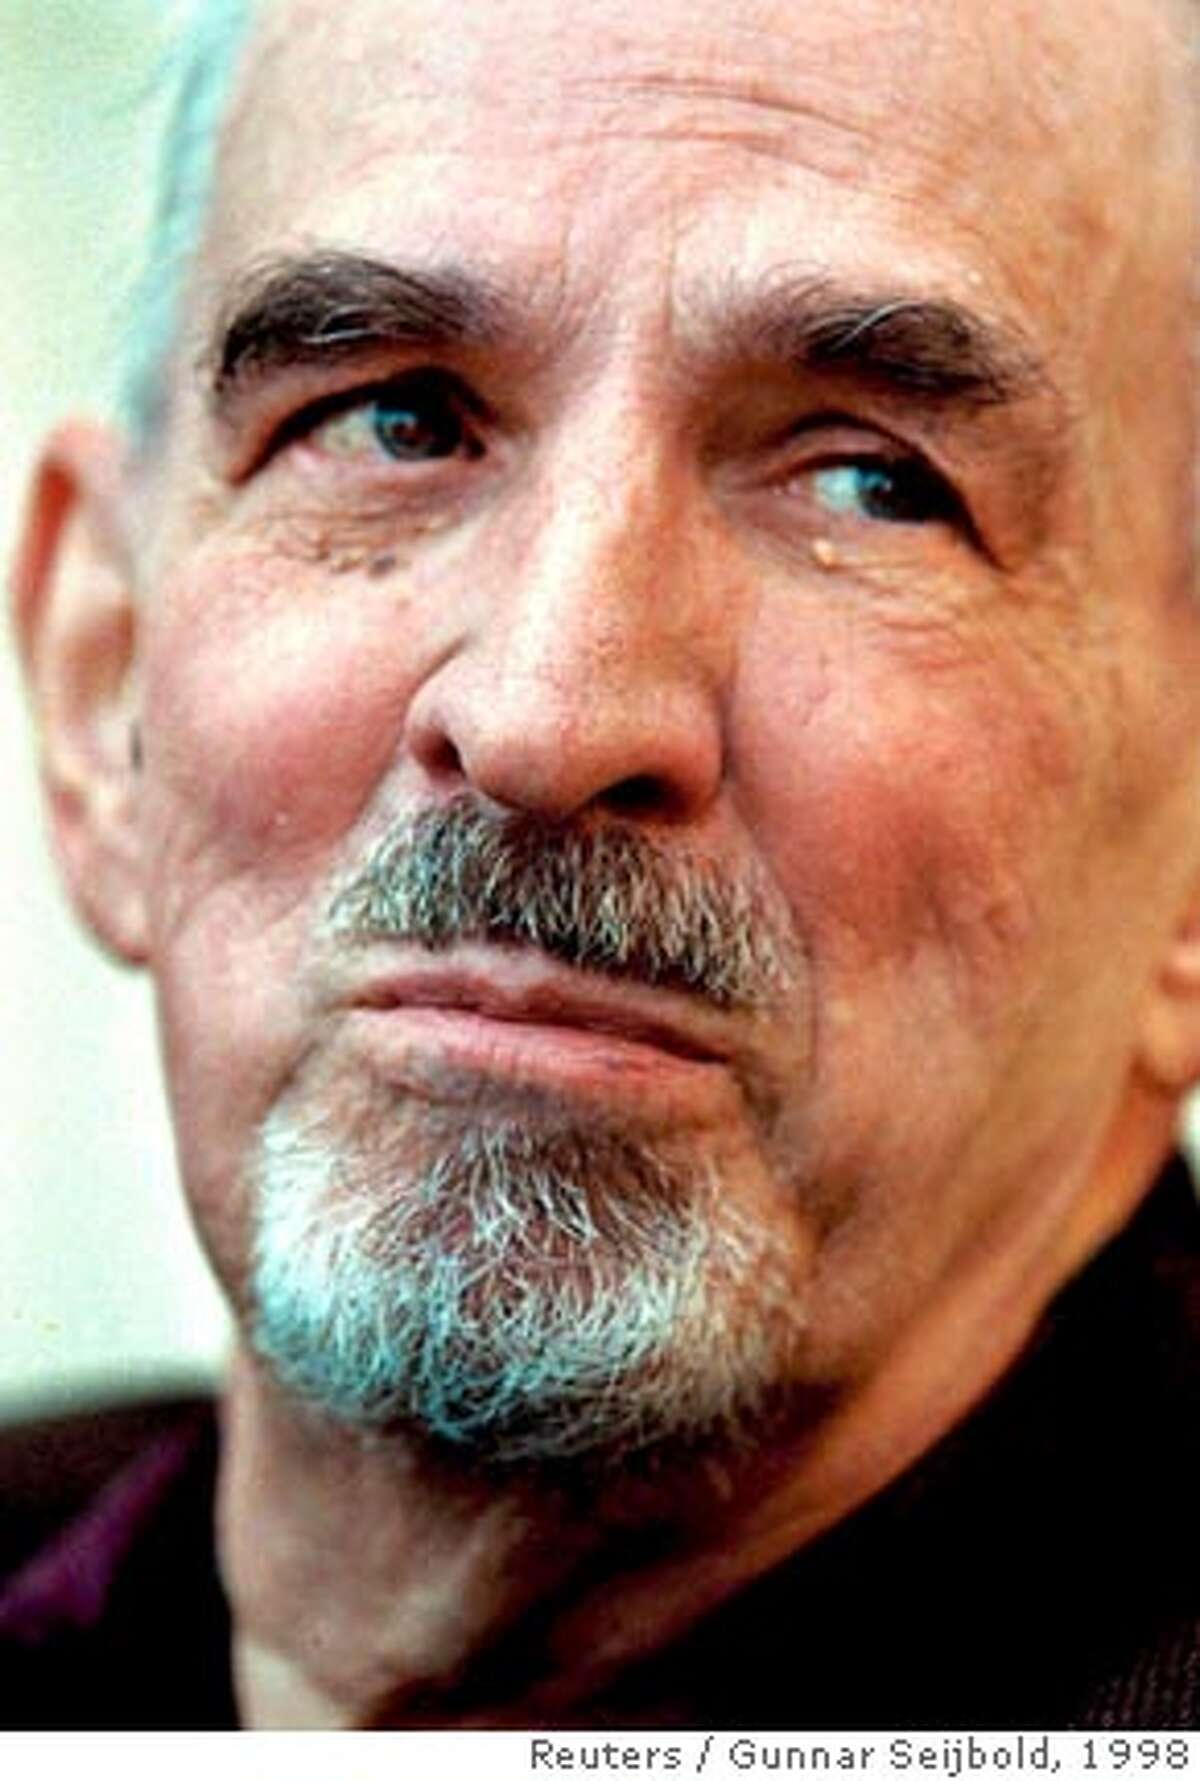 Legendary Swedish film director Ingmar Bergman is seen in Stockholm in this May 9, 1998 file photo. Bergman has died at the age of 89, an official at s Royal Dramatic Theatre said on July 30, 2007. REUTERS/Gunnar Seijbold/Scanpix (SWEDEN) OUT. NO COMMERCIAL SALES